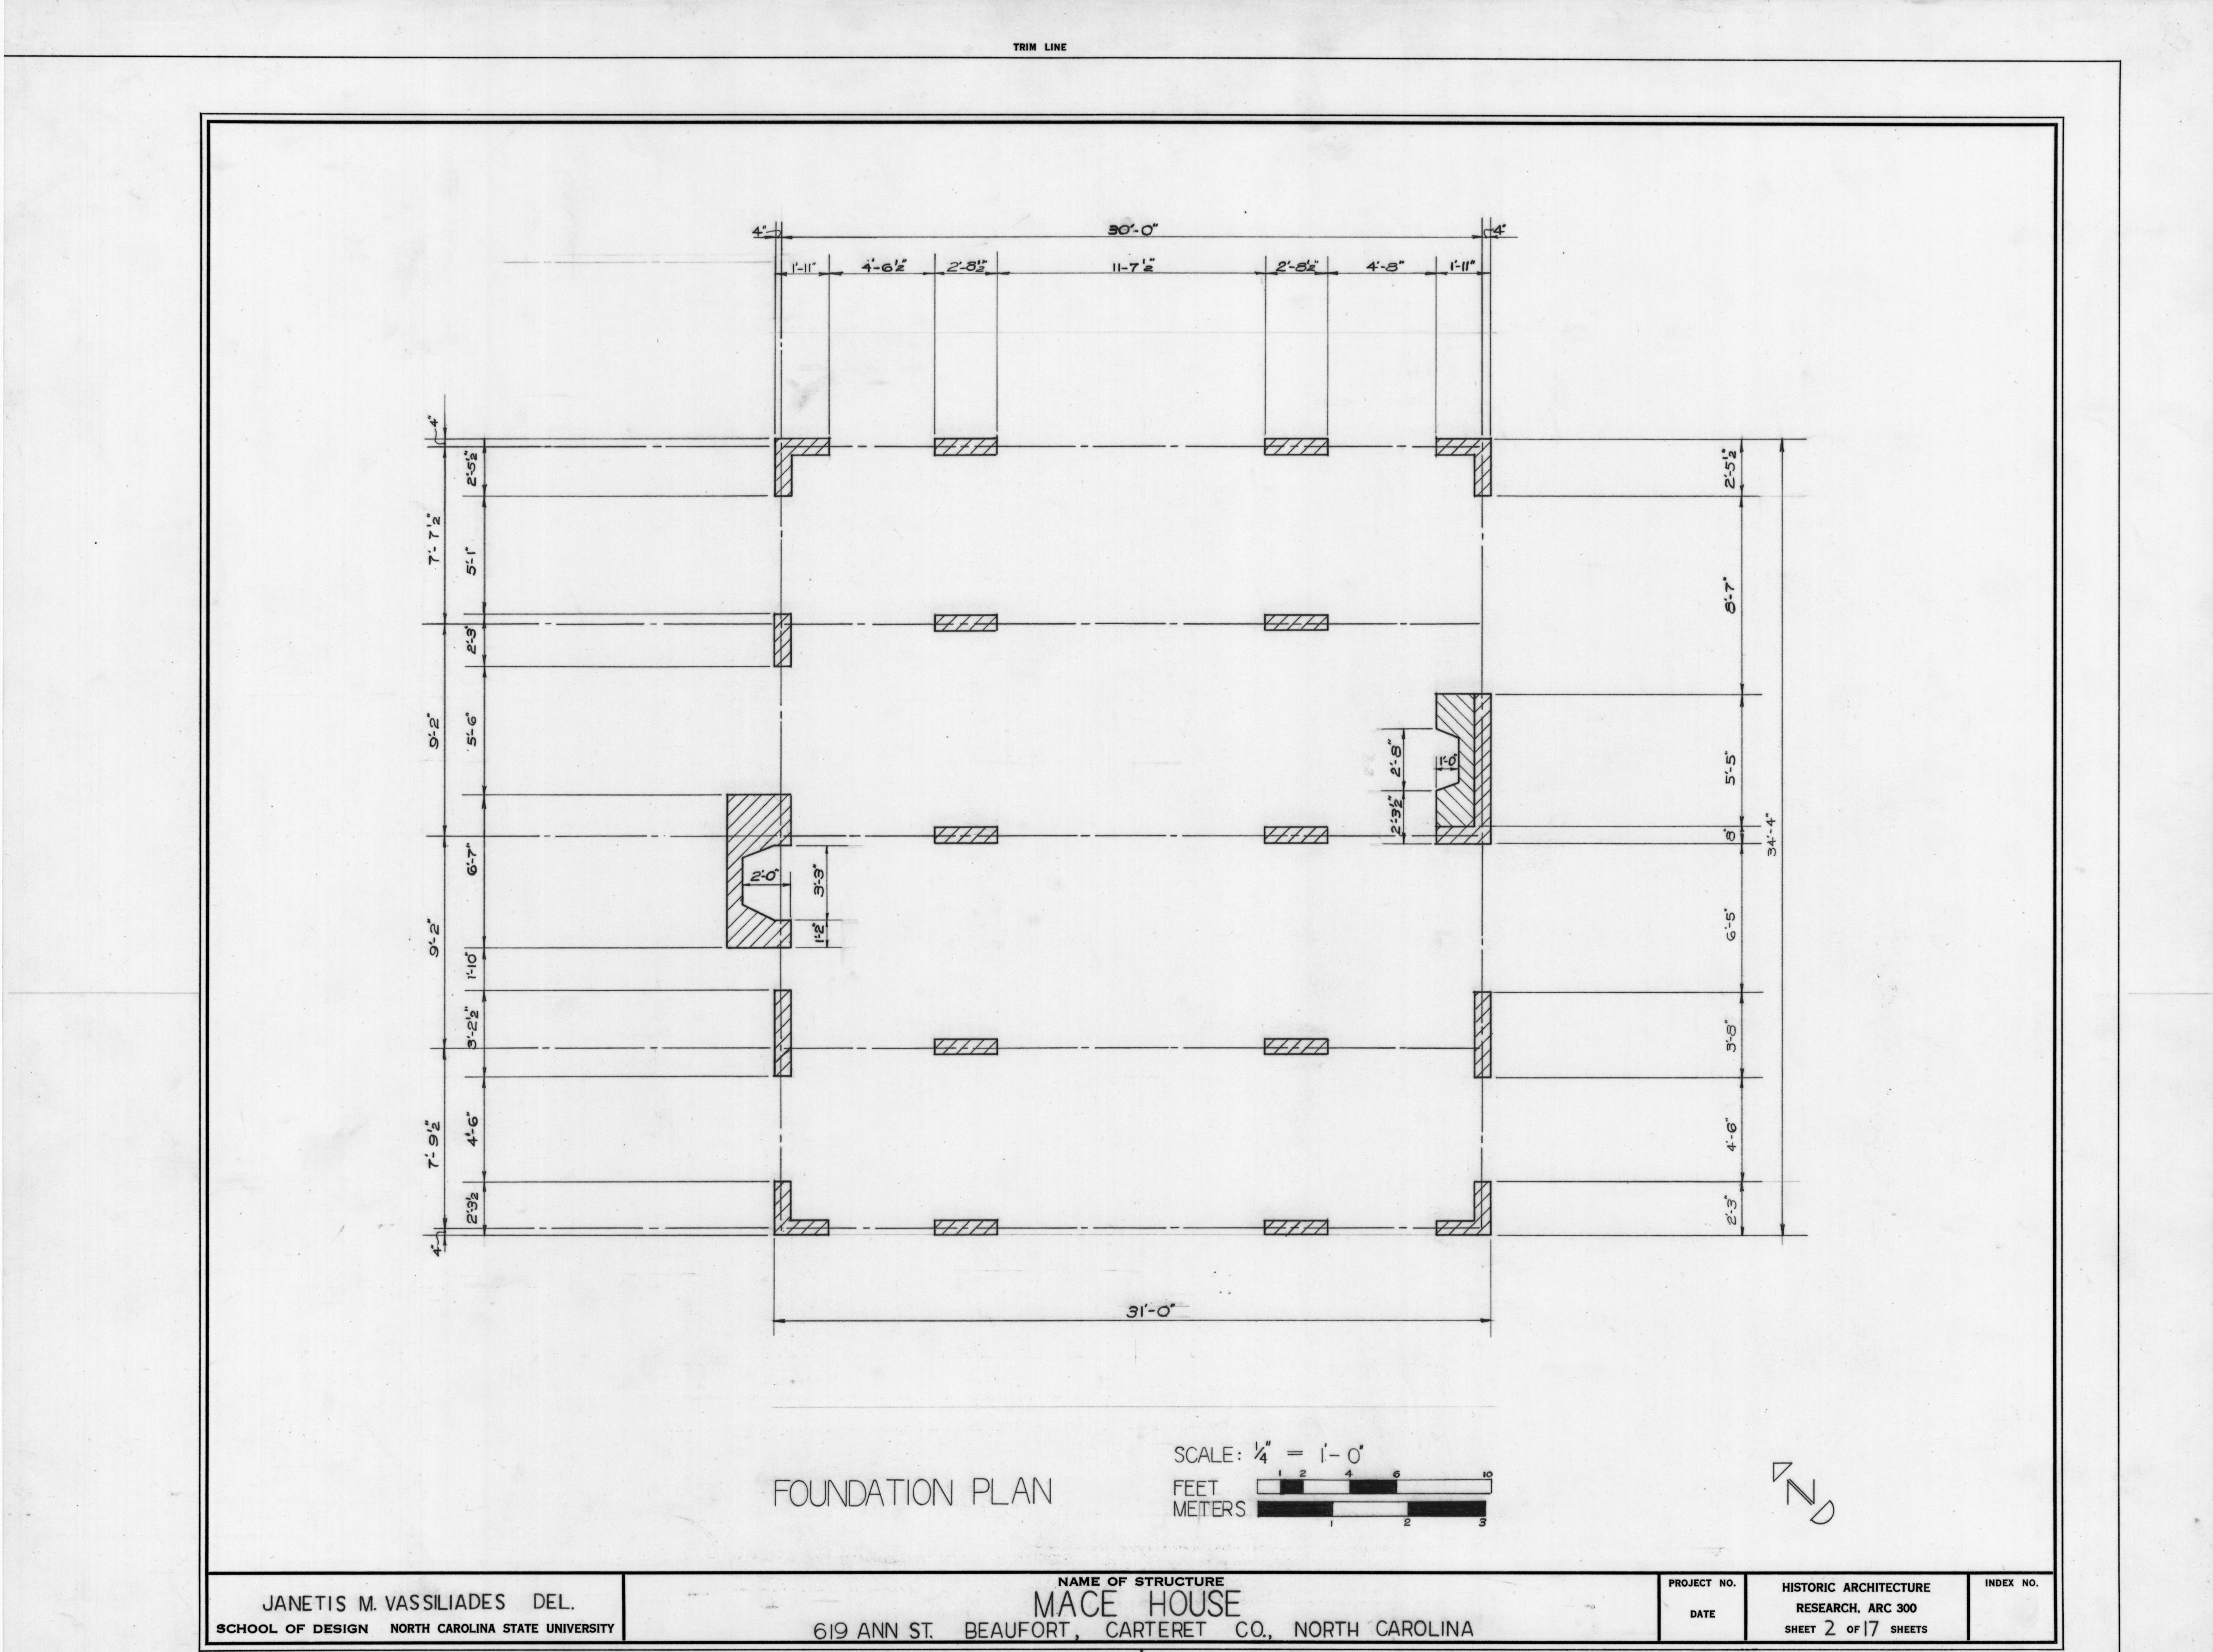 Foundation Plan Mace House Beaufort North Carolina